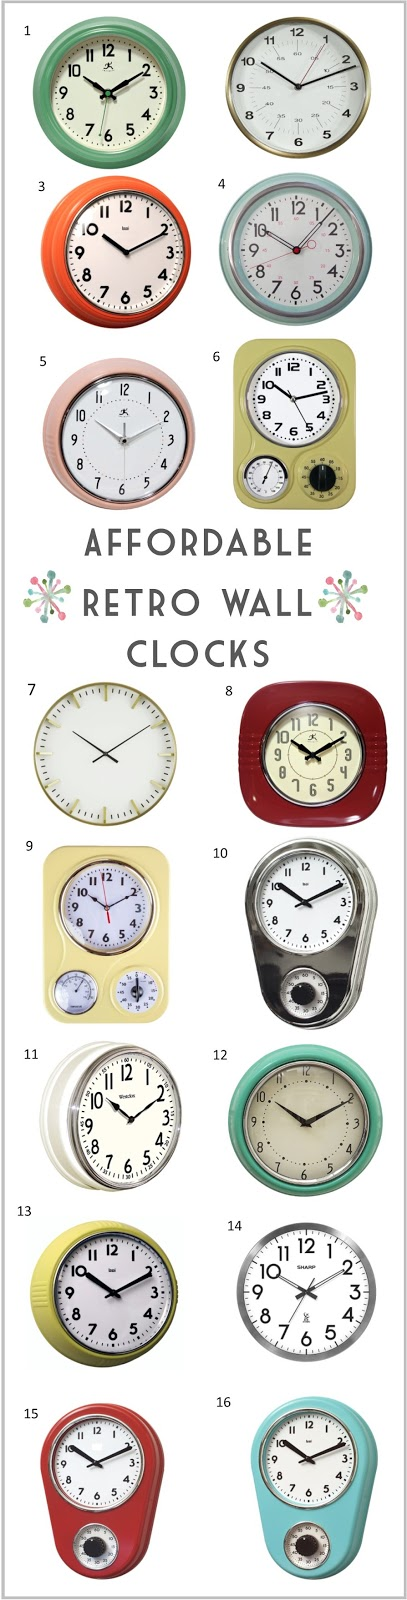 affordable retro colorful kitchen bathroom and office wall clocks || Sew at Home Mummy